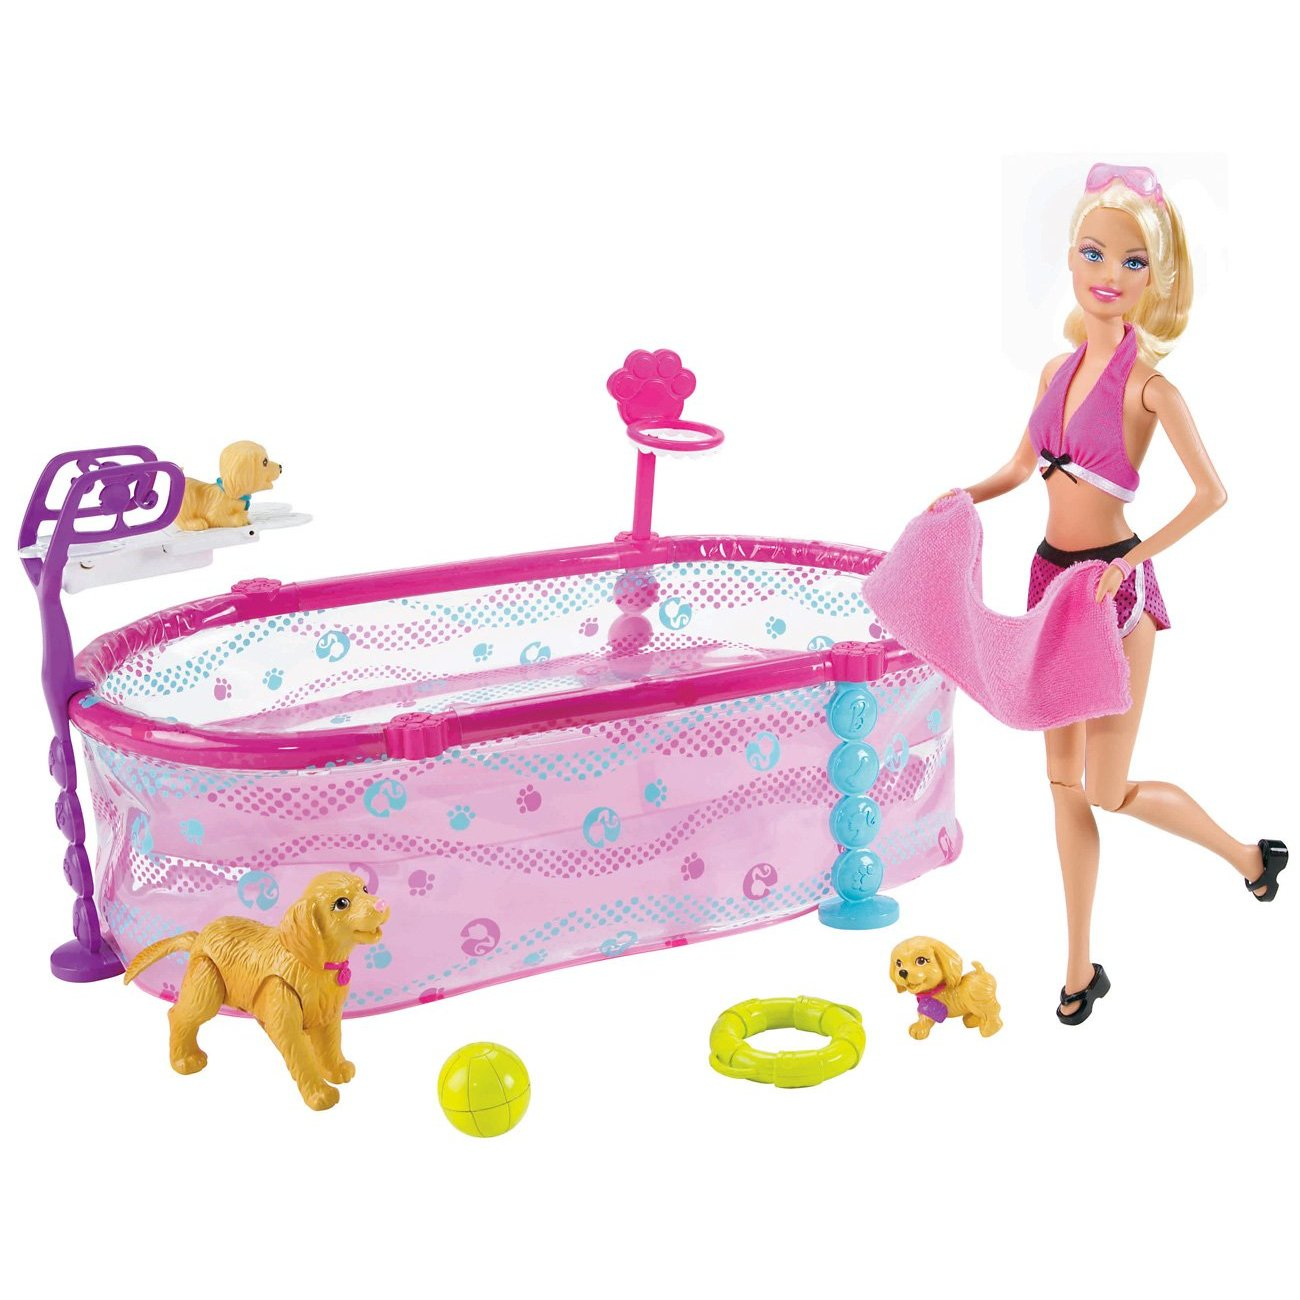 Autistic Toys For Children Barbie Puppy Swim School Pool